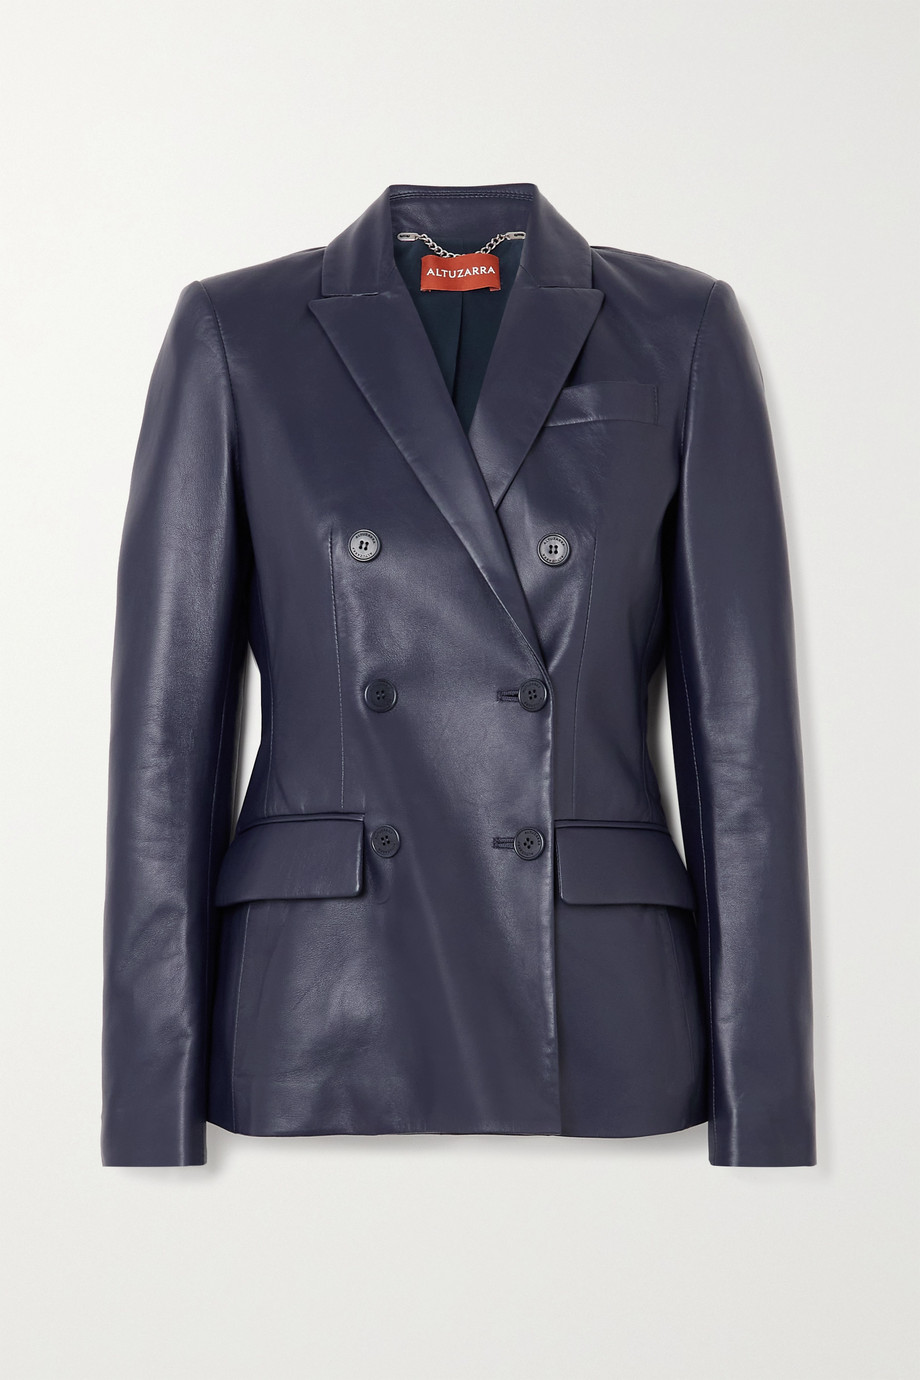 ALTUZARRA Indiana double-breasted leather blazer